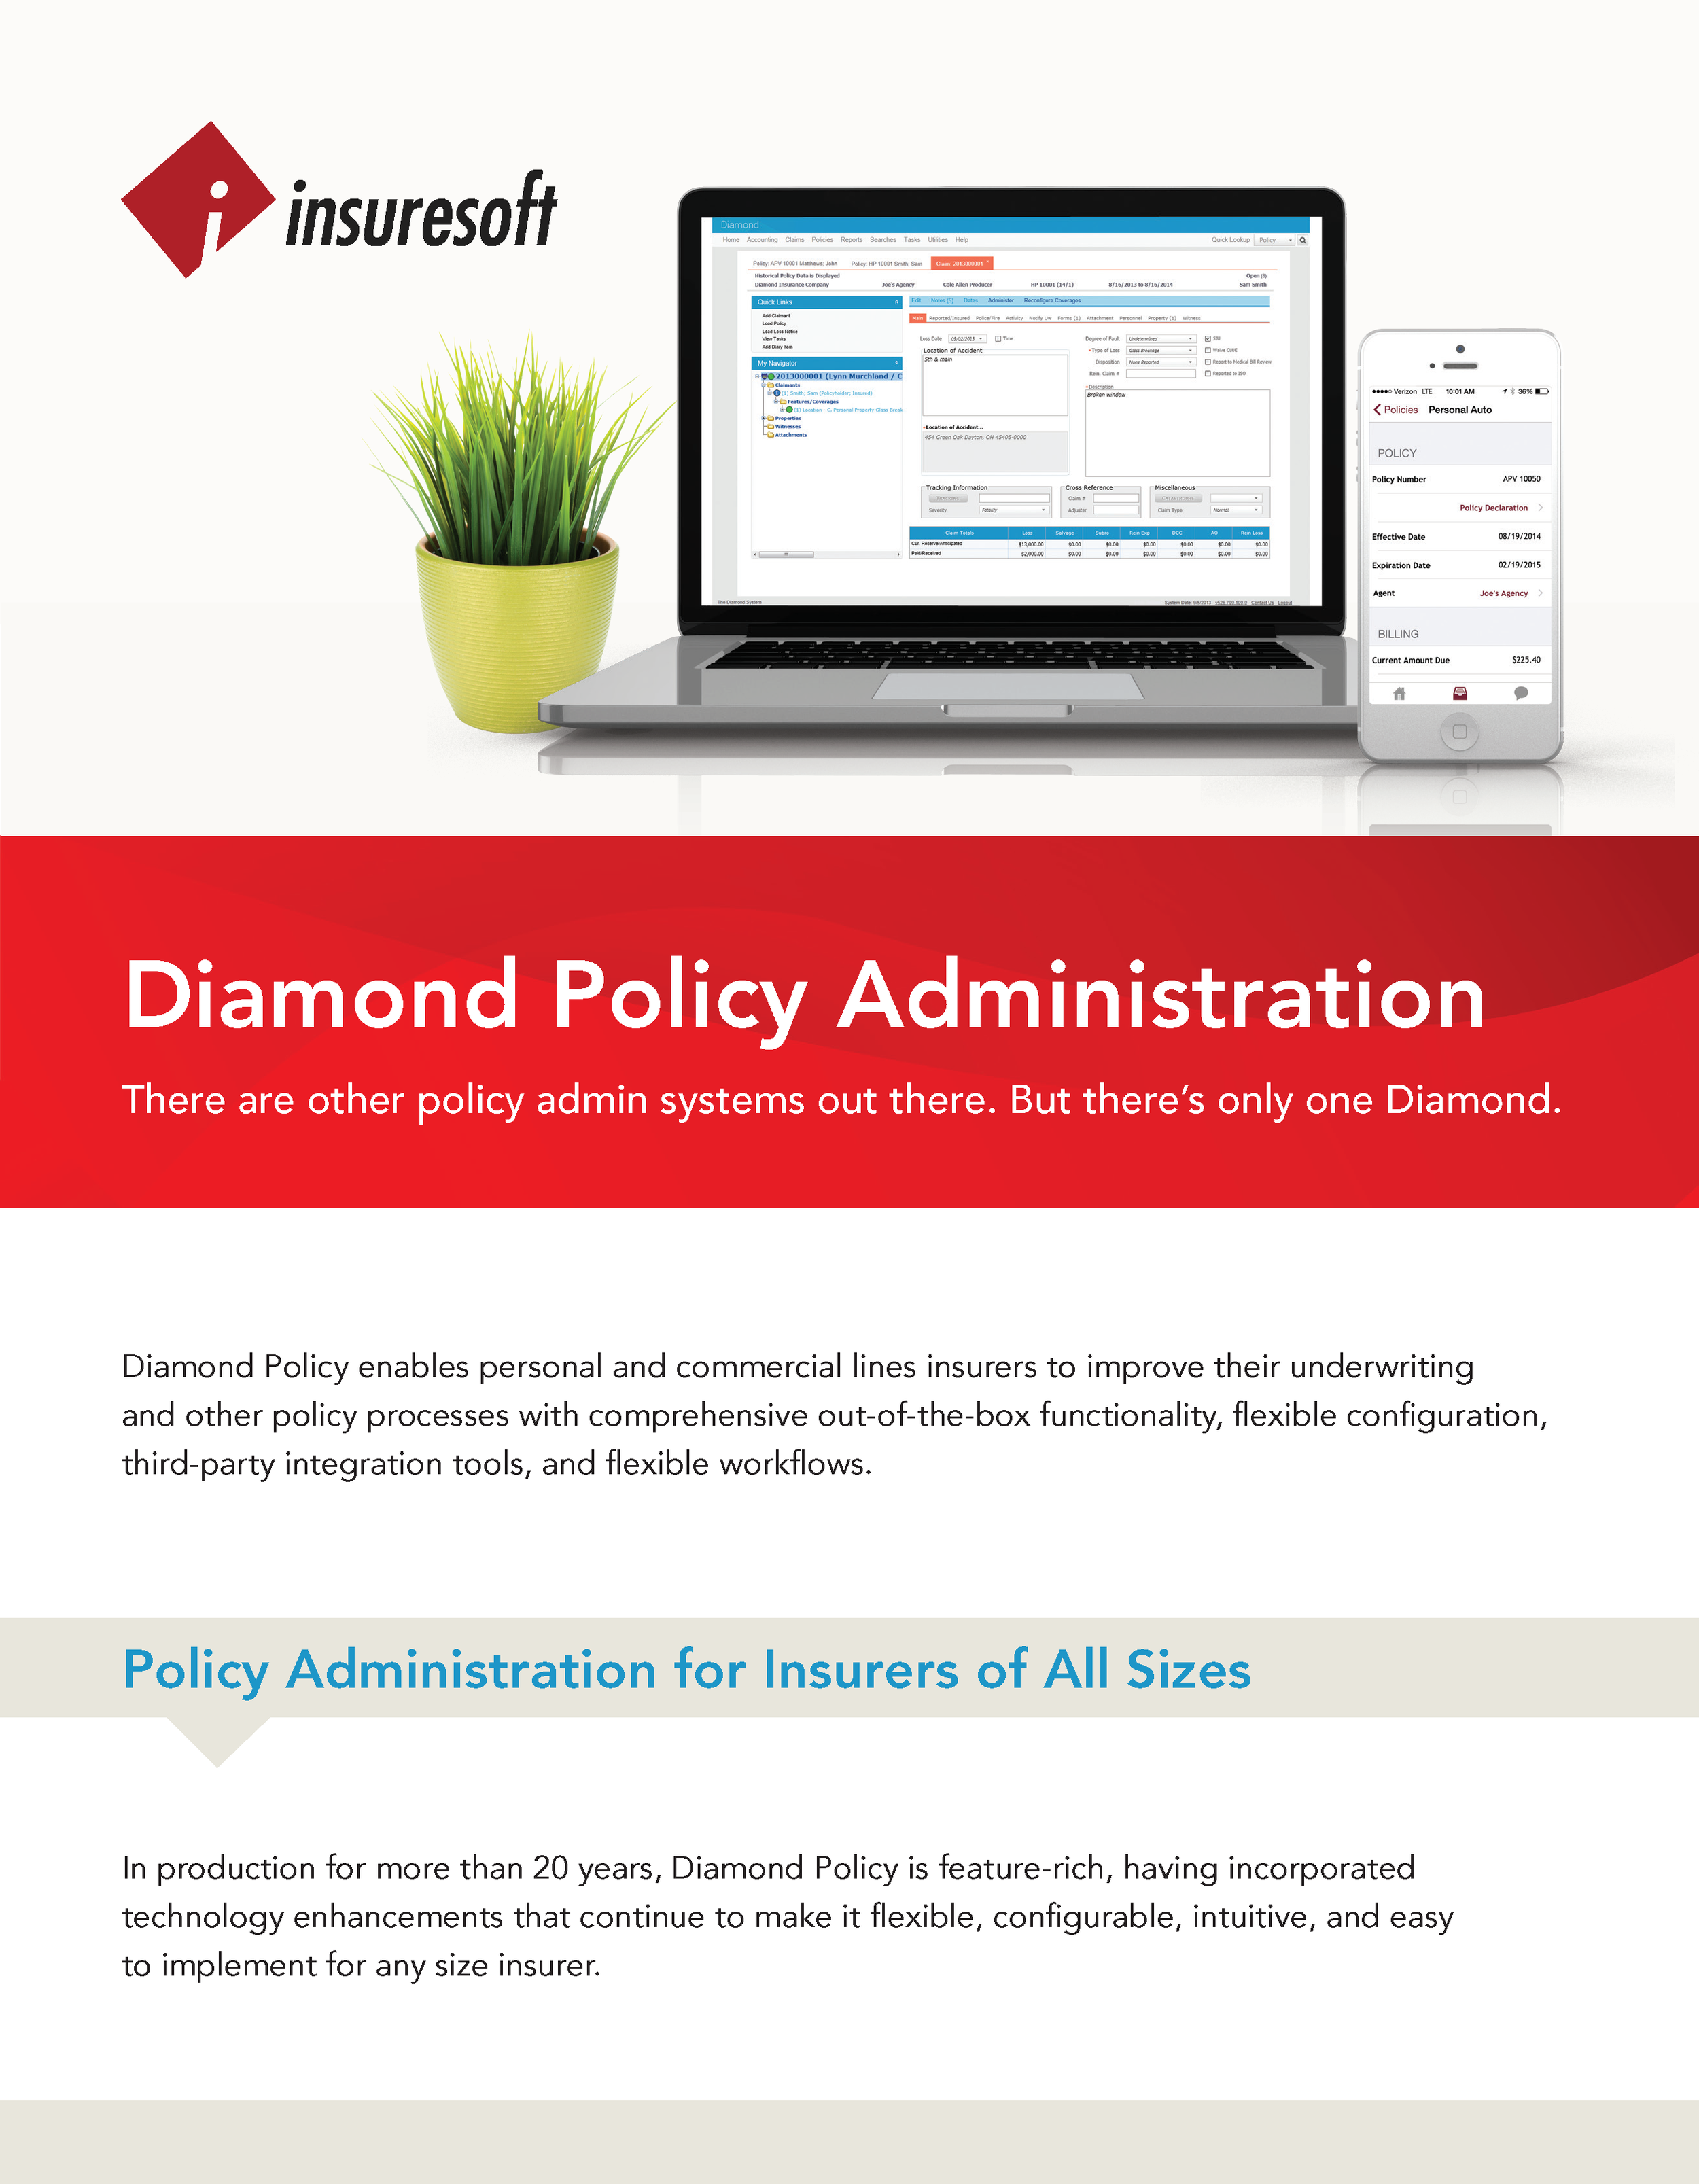 Diamond Policy increases profitability, streamlines processes, and enhances overall customer experience. Click here for the Diamond Policy Administration Datasheet.